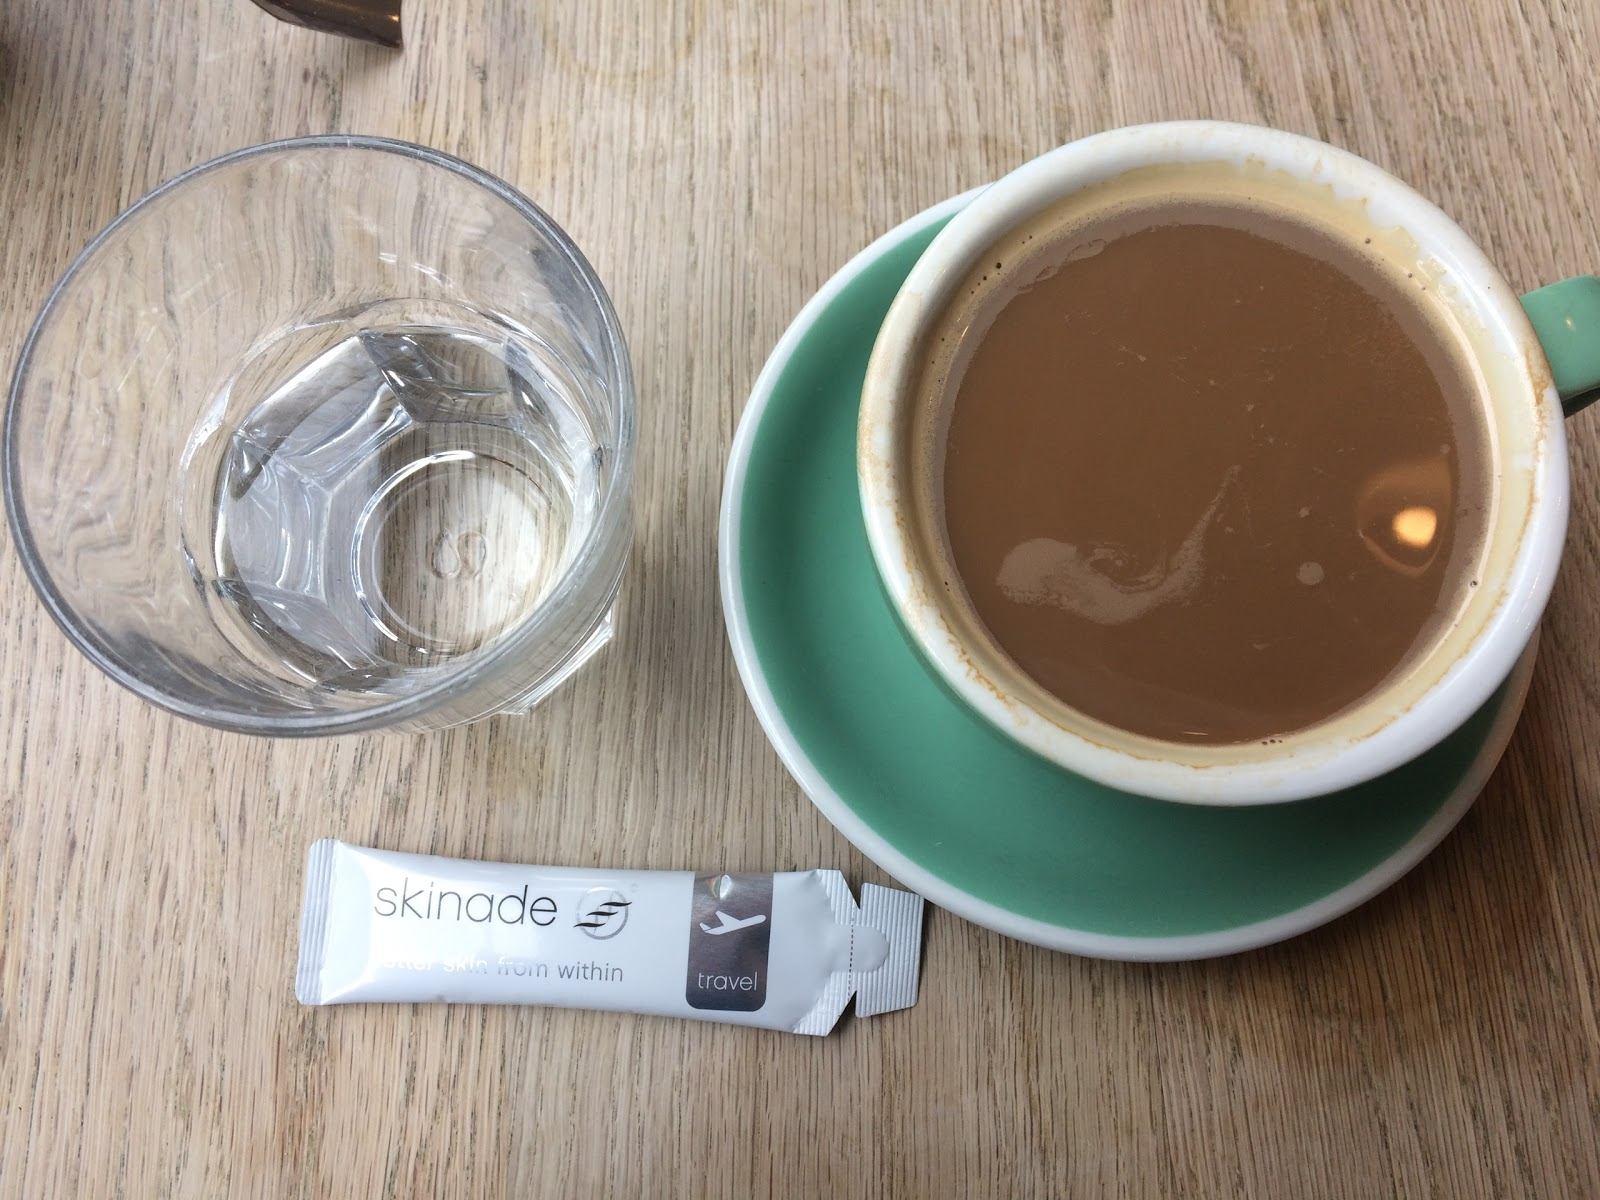 Skinade travel pack, glass of water and coffee